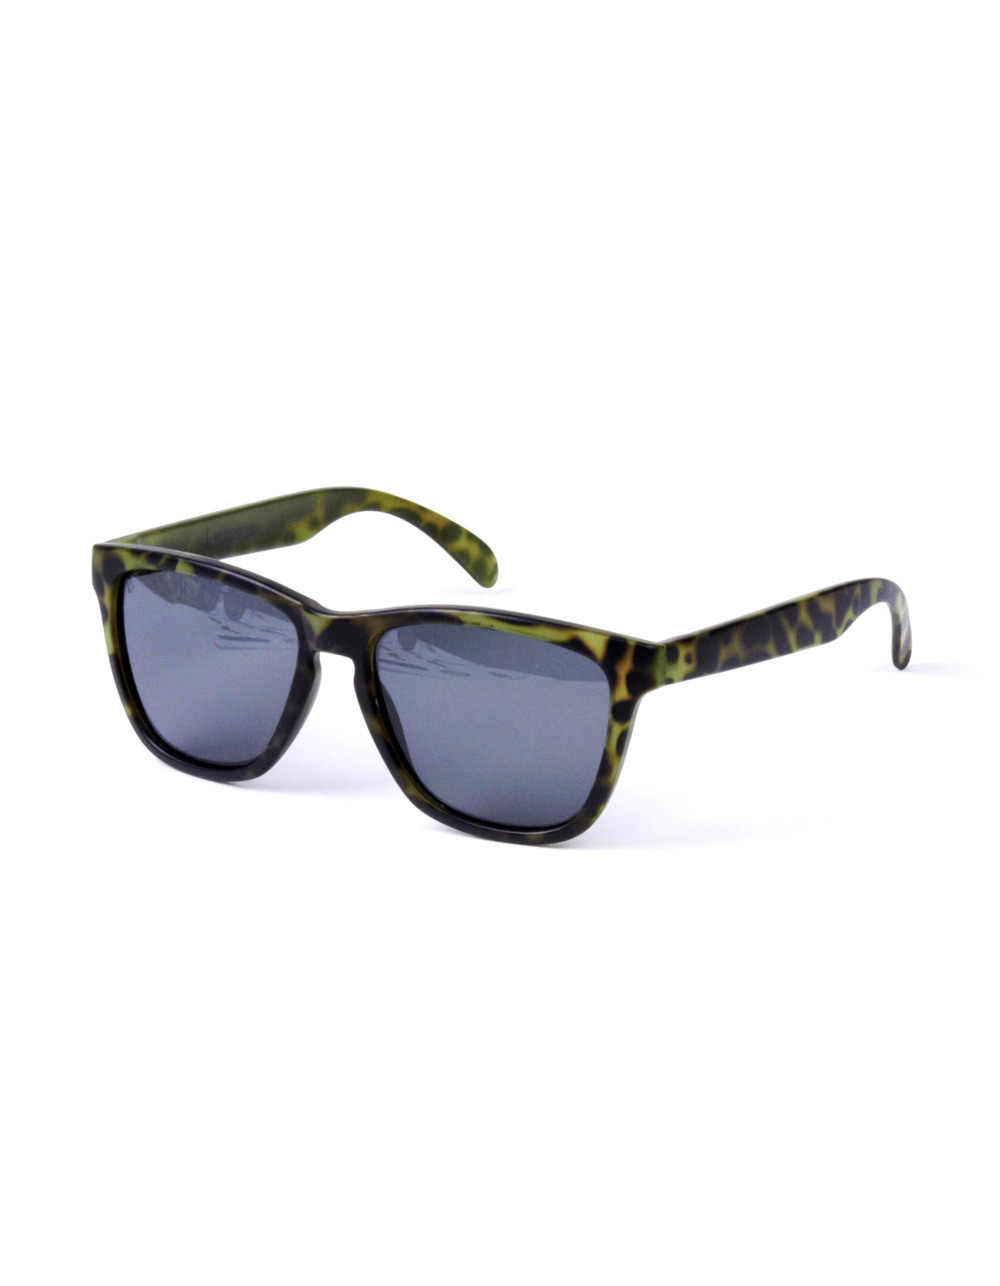 Black sunglasses retro camouflage